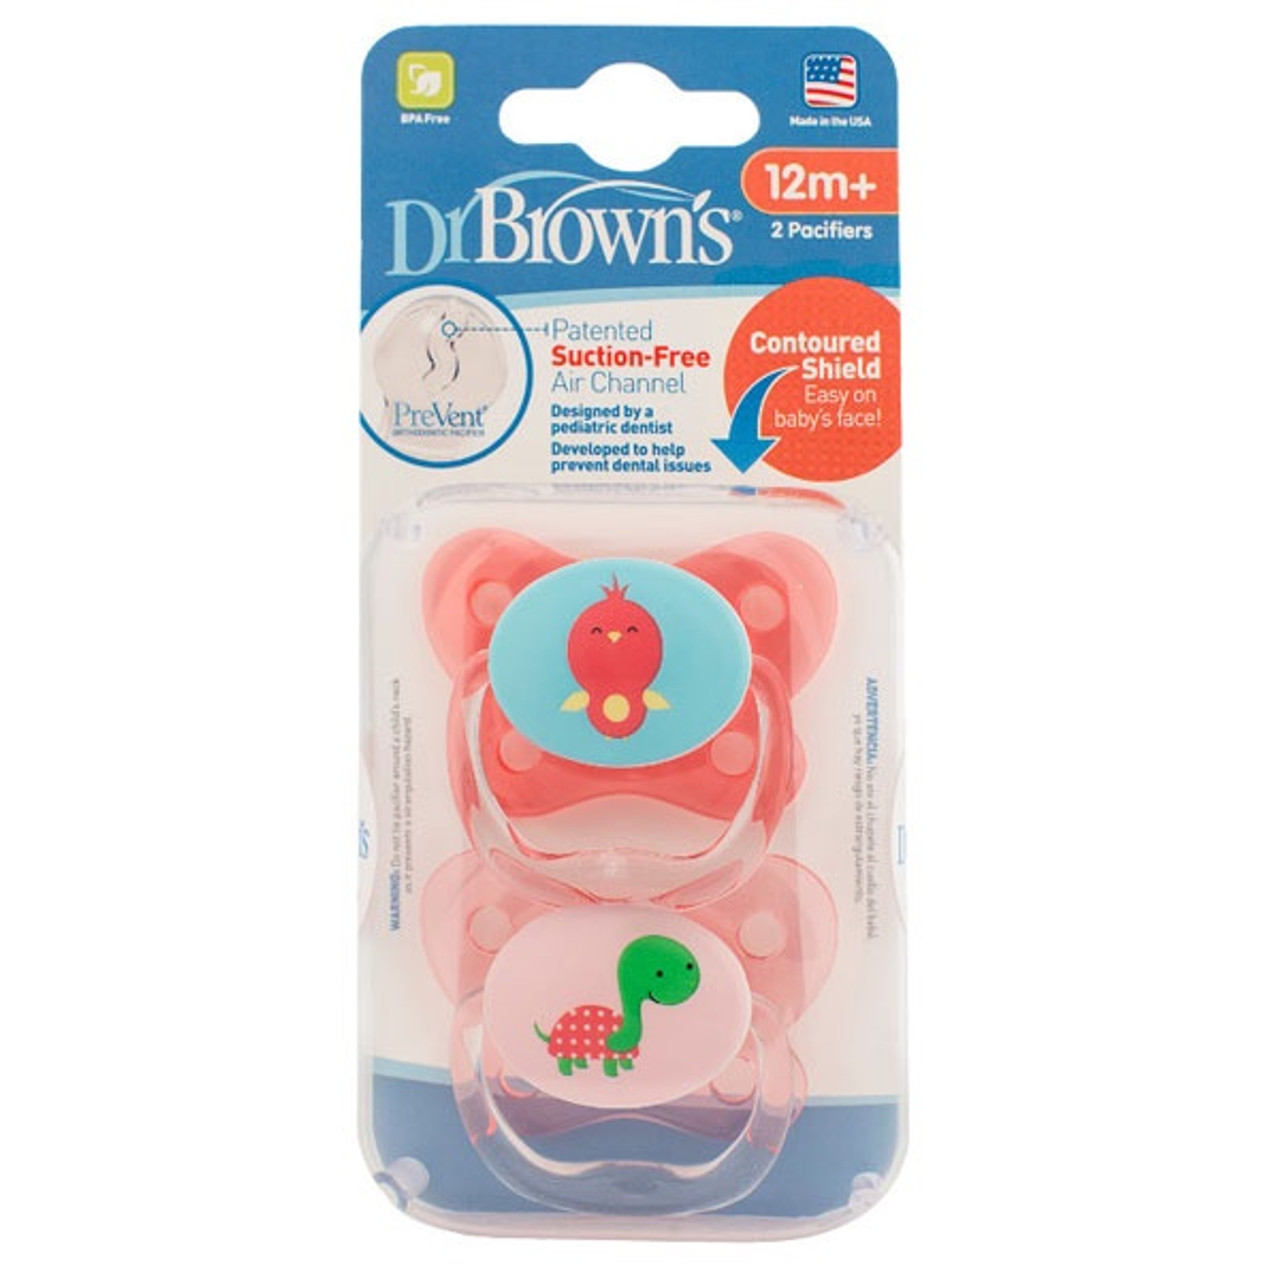 Dr Brown's Prevent Contoured Pacifier 12m+ 2pk - PINK